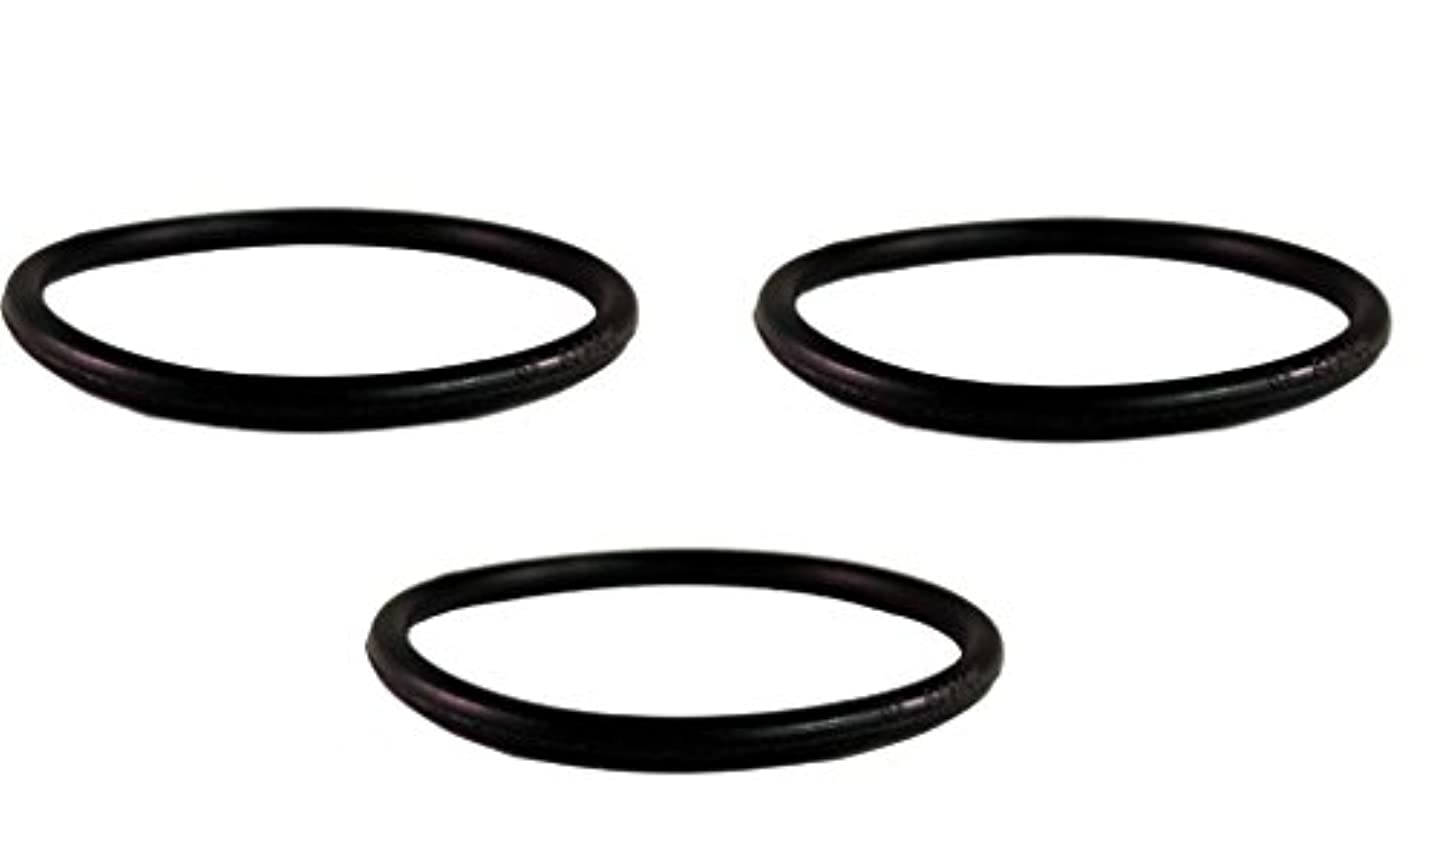 Sanitaire Upright Round Vacuum Cleaner Belt, designed to fit all Sanitaire Uprights where the belt rides in the center of the brushroll, 3 belts in pack